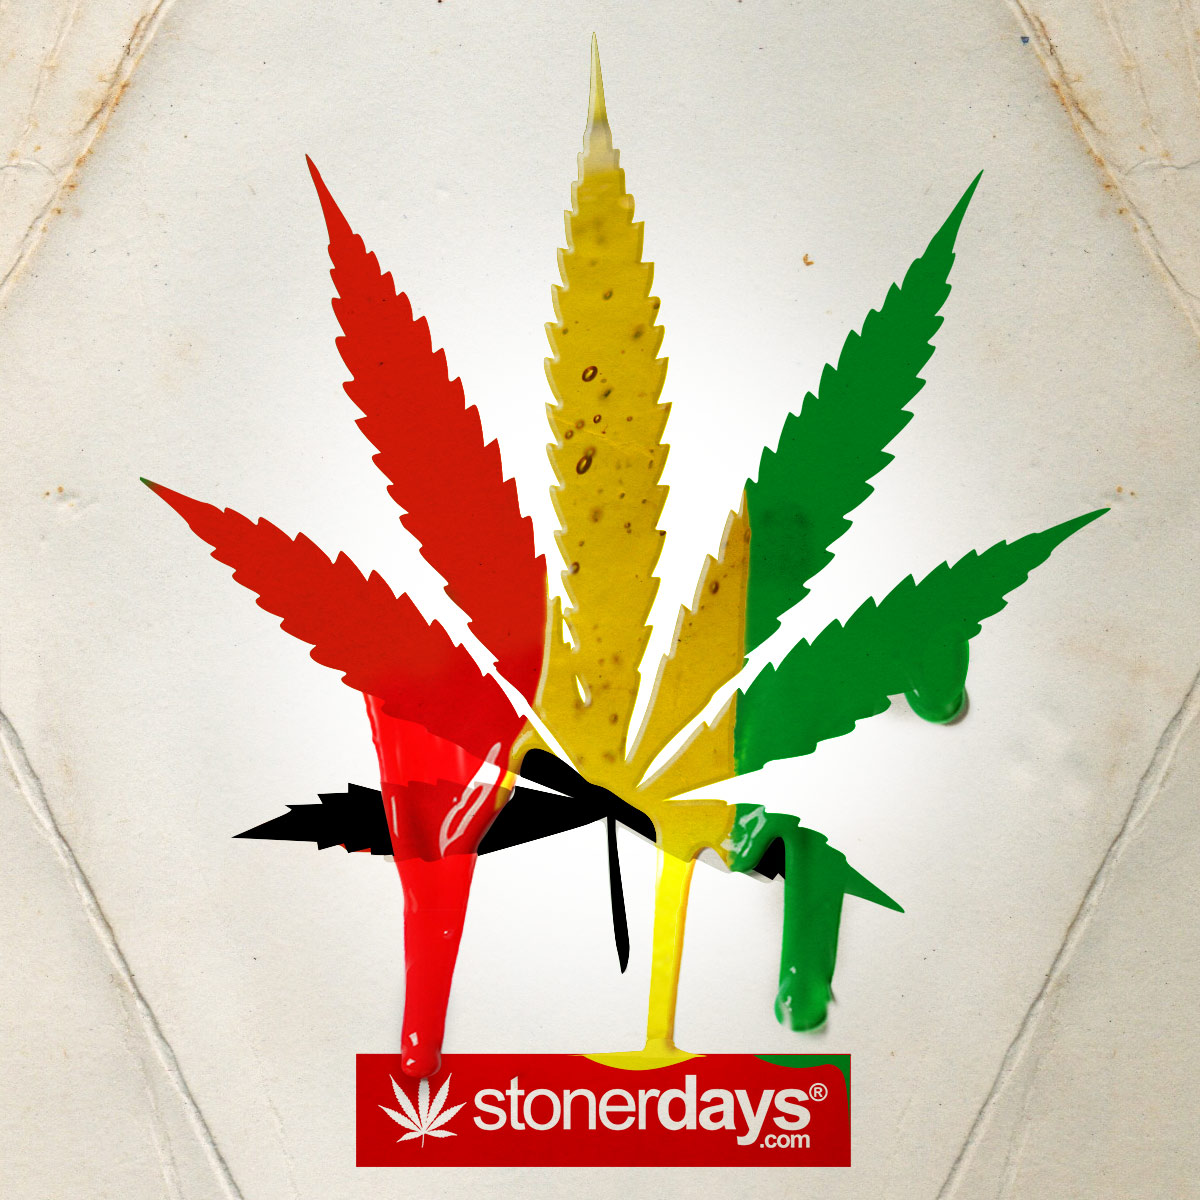 Wallpaper iphone rasta - Rasta 420 Stonerdays Rasta